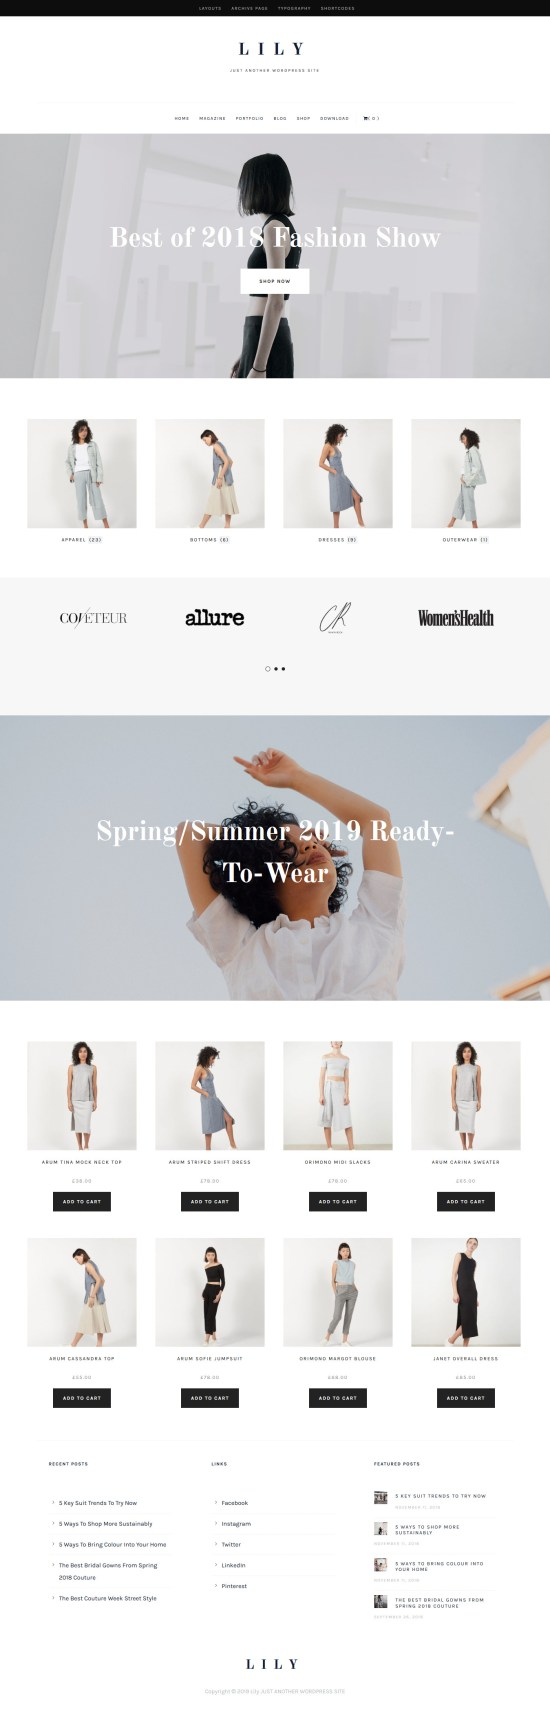 lily wordpress theme 01 - Lily WordPress Theme